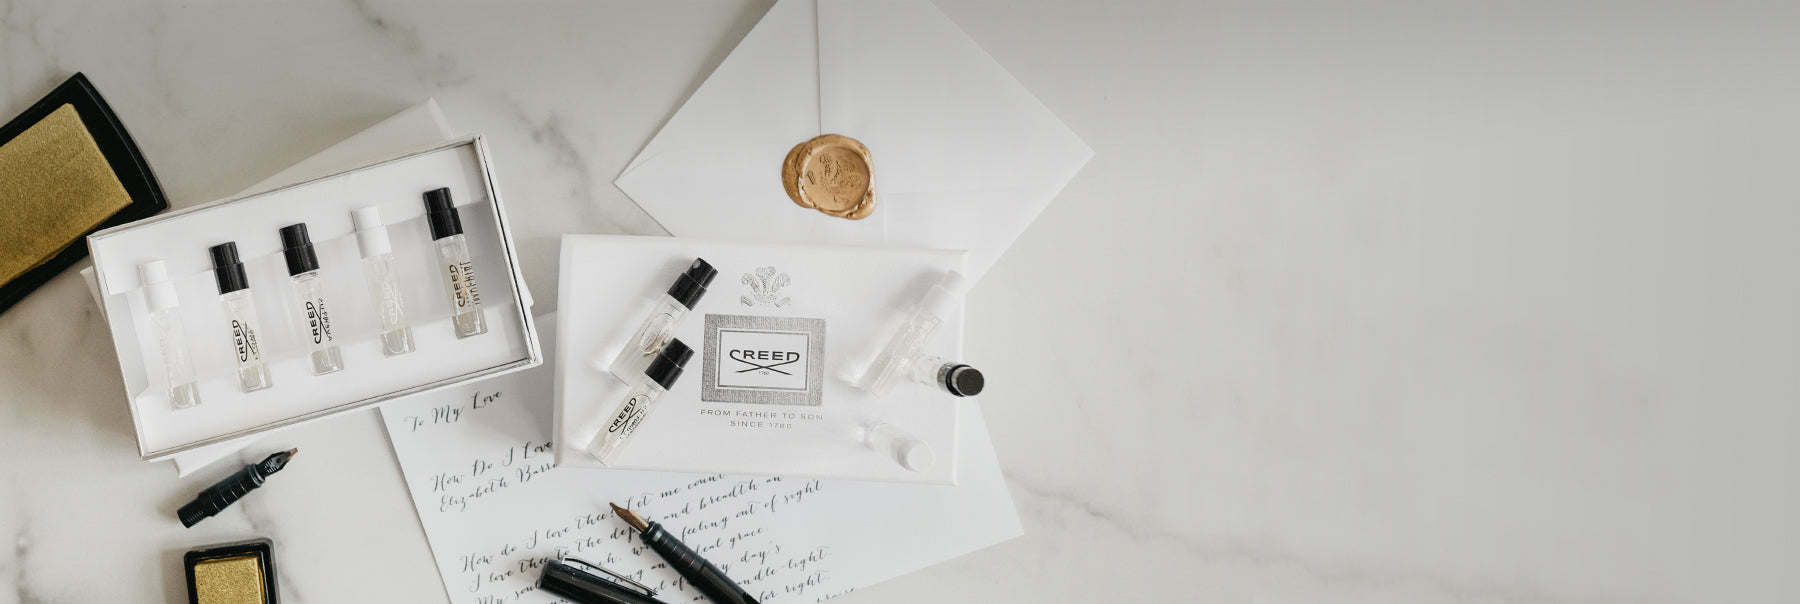 Open box of 5 sample fragrance vials and a closed box of sample vials on a stationary set with pens and envelopes